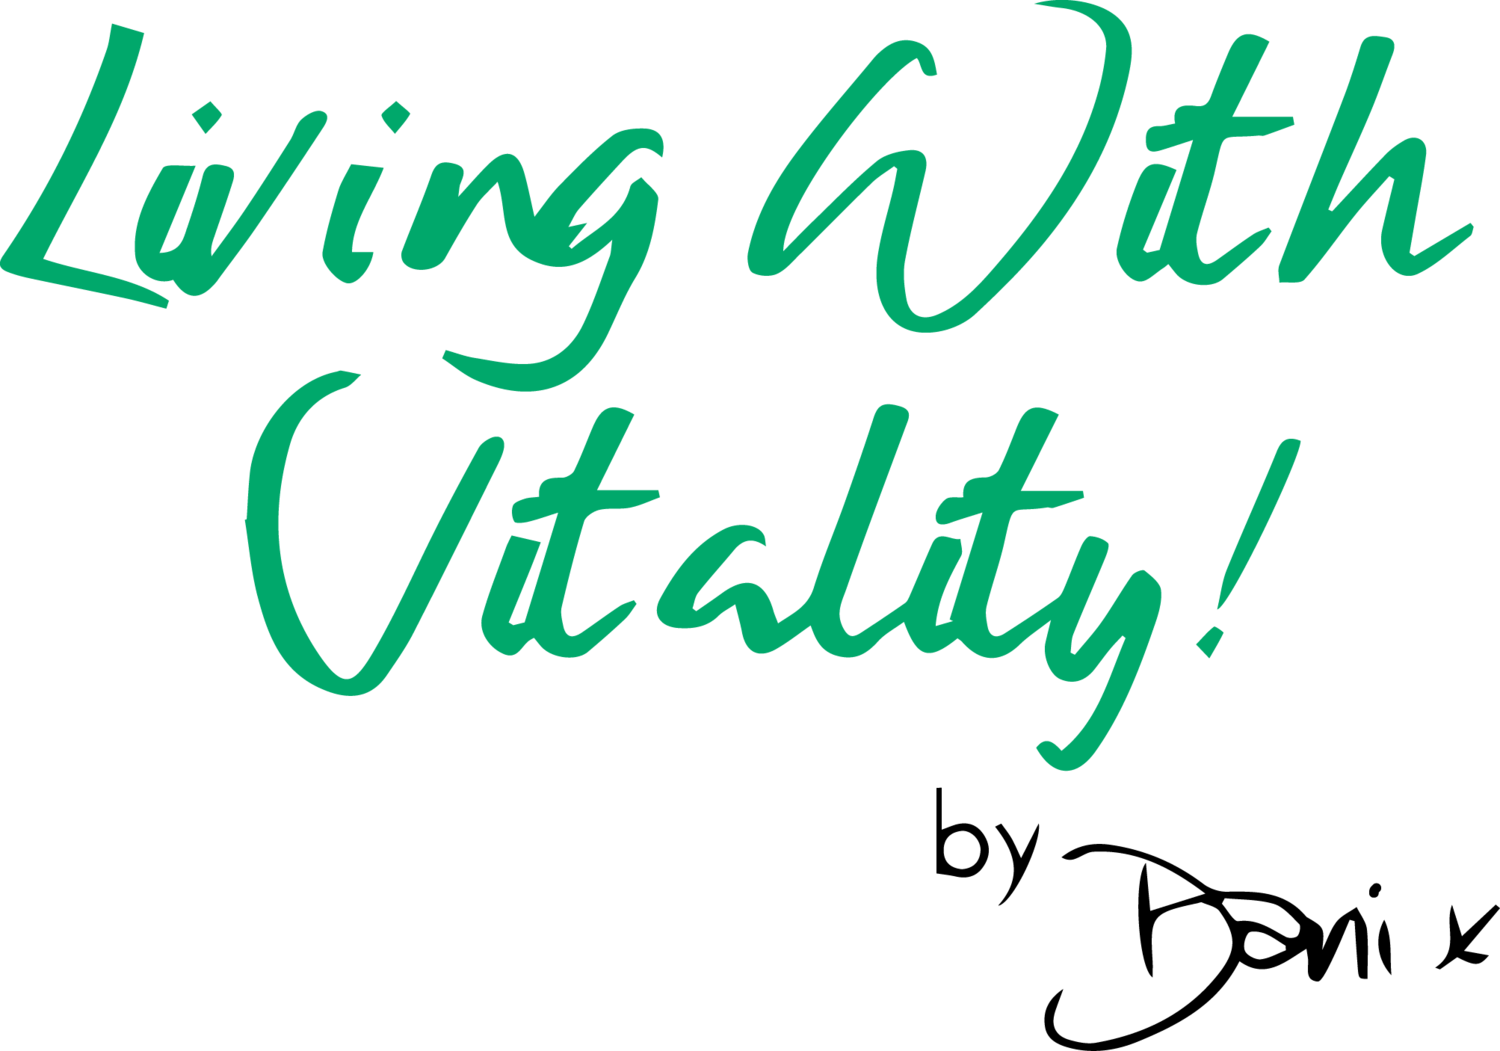 Living With Vitality! by Dani